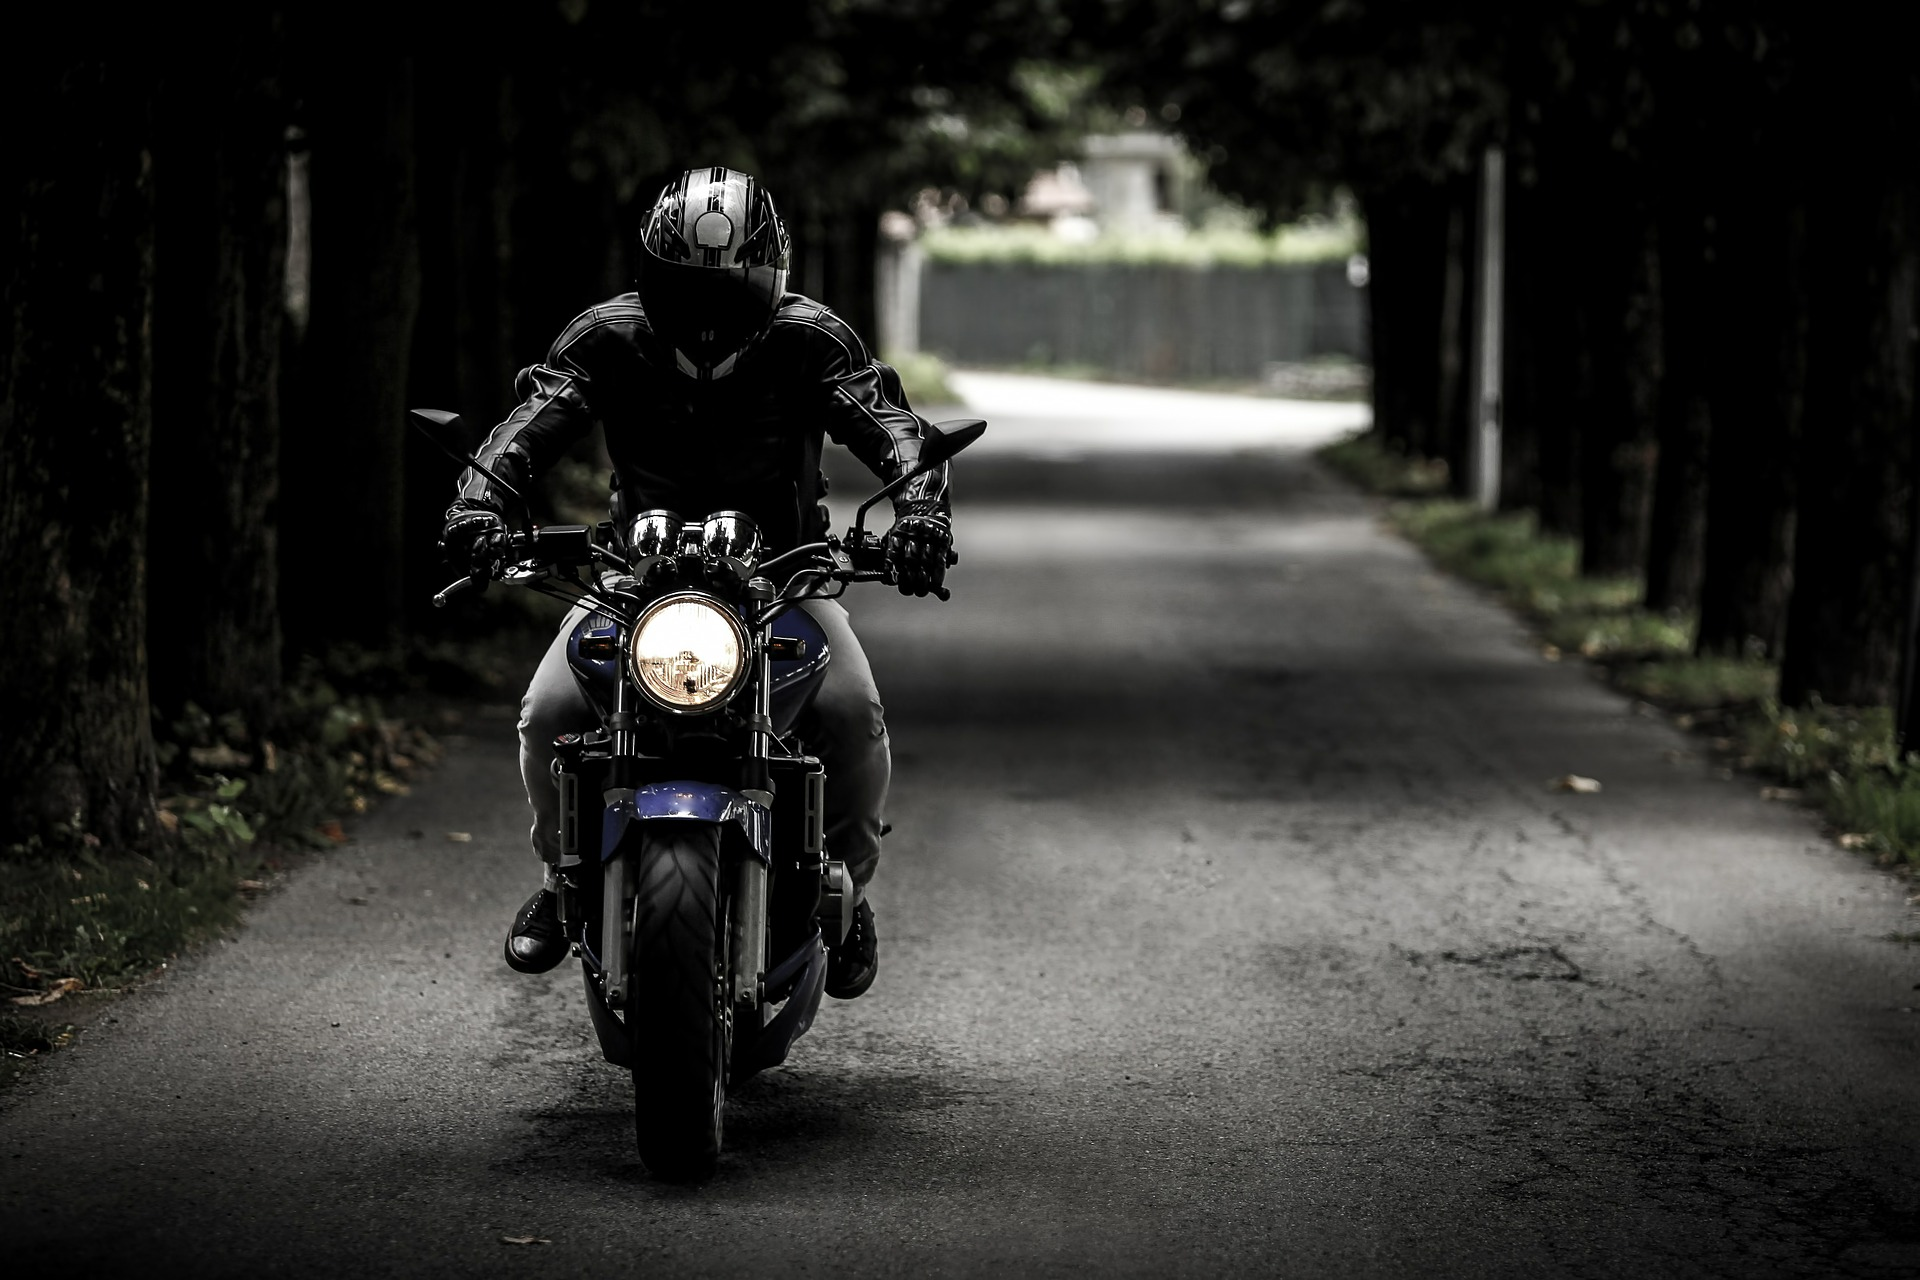 Motorcycle insurance in Downers Grove, Affordable motorcycle insurance